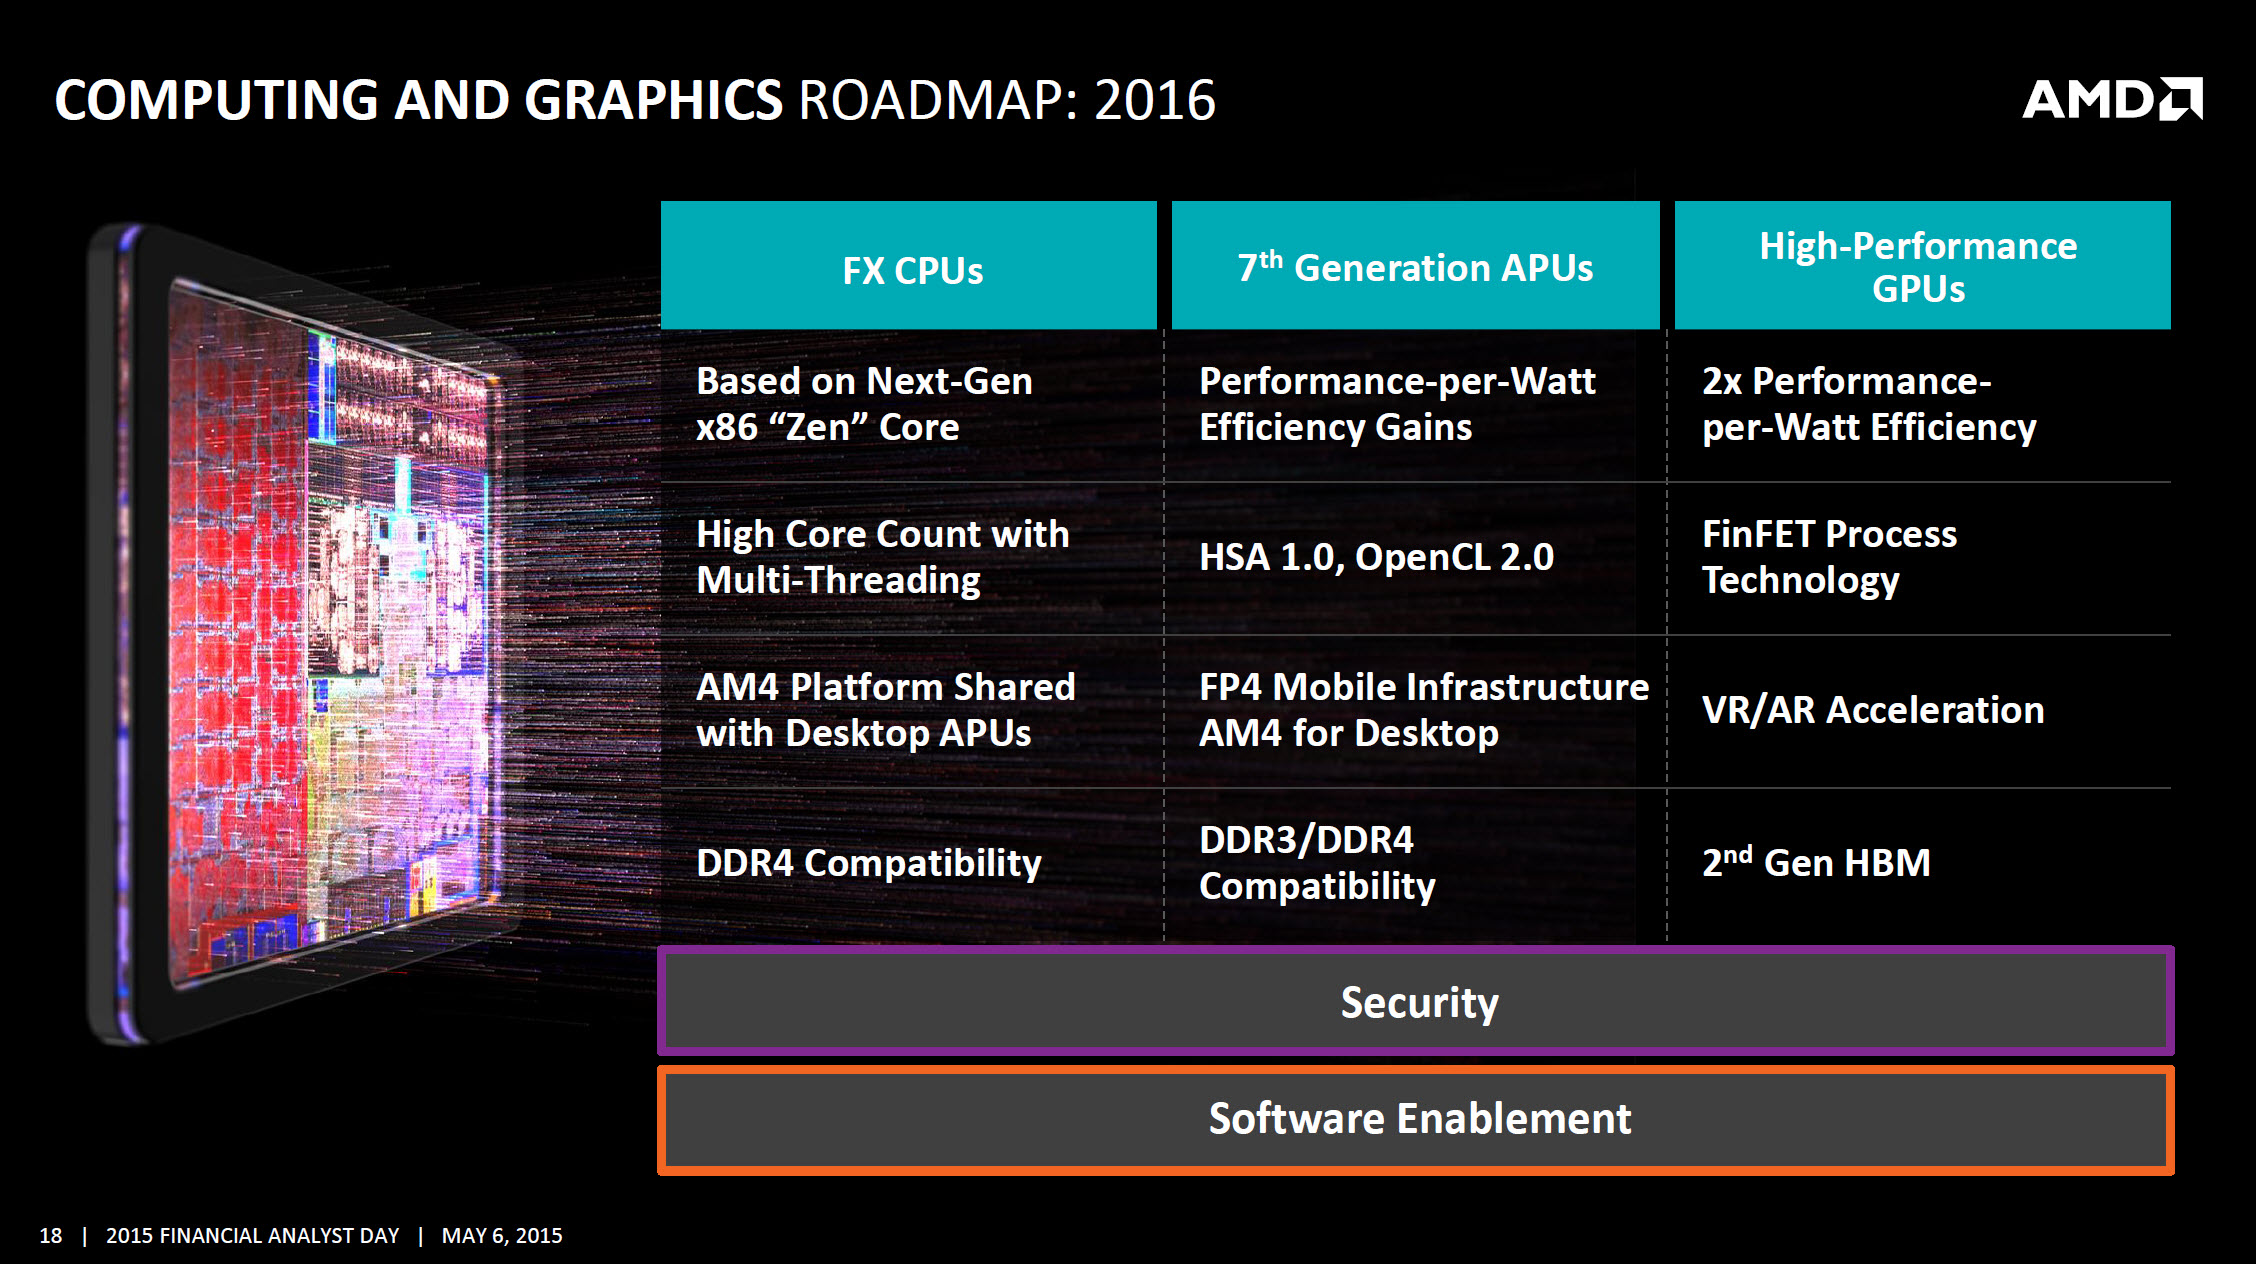 AMD Financial Analyst Day 2016 CPU, APU, GPU Roadmap